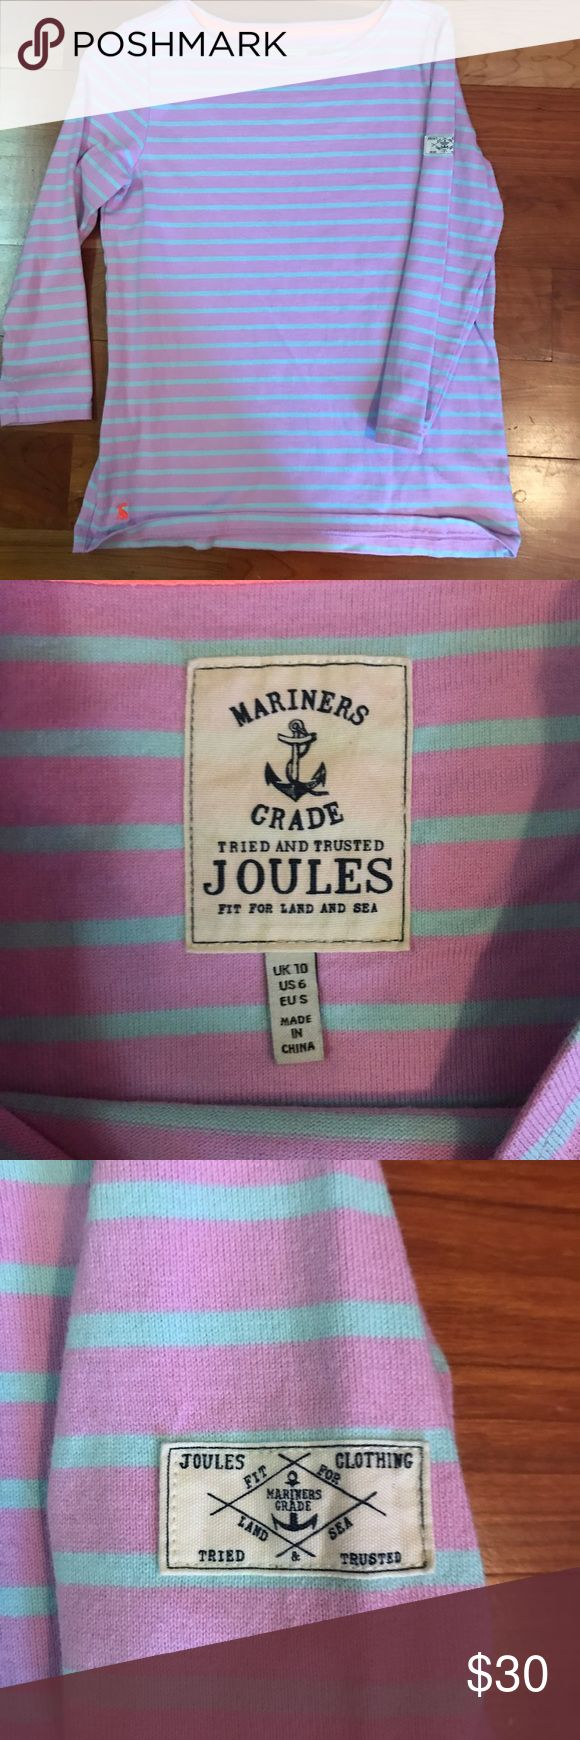 Joules Striped Knit Shirt Joules shirt....bought in England. Worn Once! Feel free to offer! Fits like a size small Joules Tops